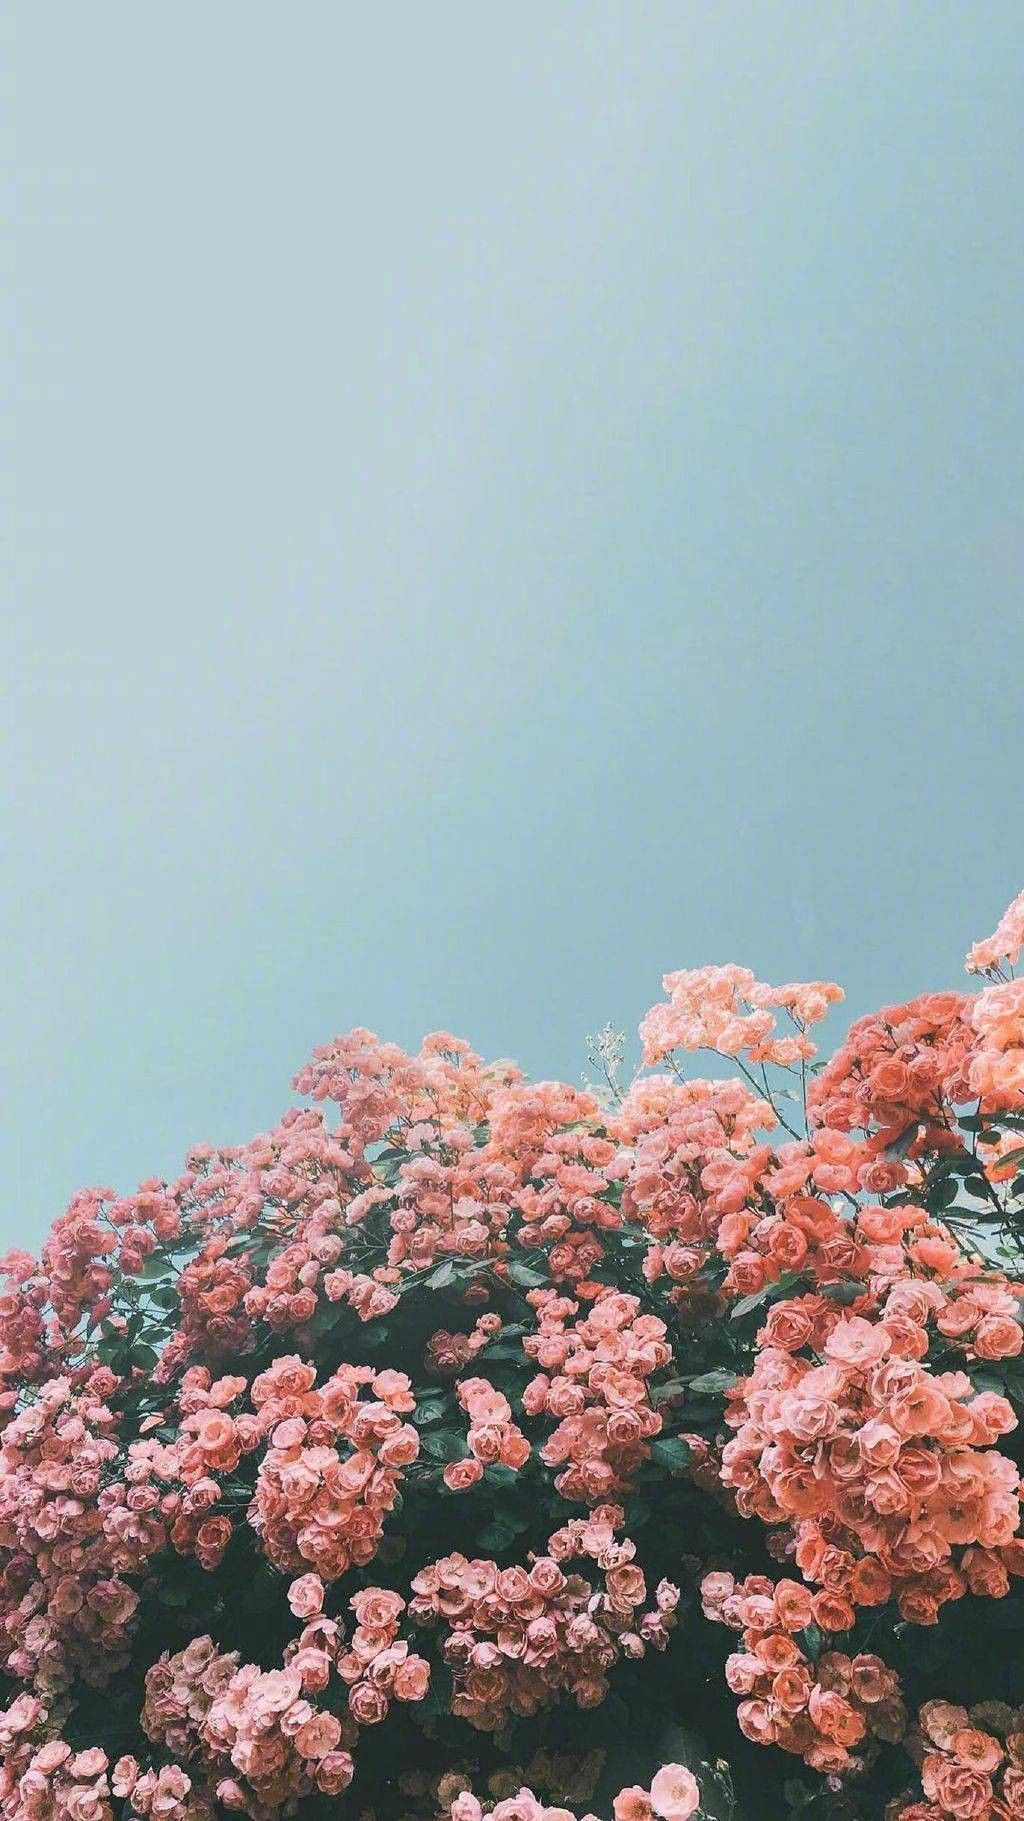 Find and download the best iphone wallpapers. Pin by idea wallpapers on Flowers | Flower iphone ...